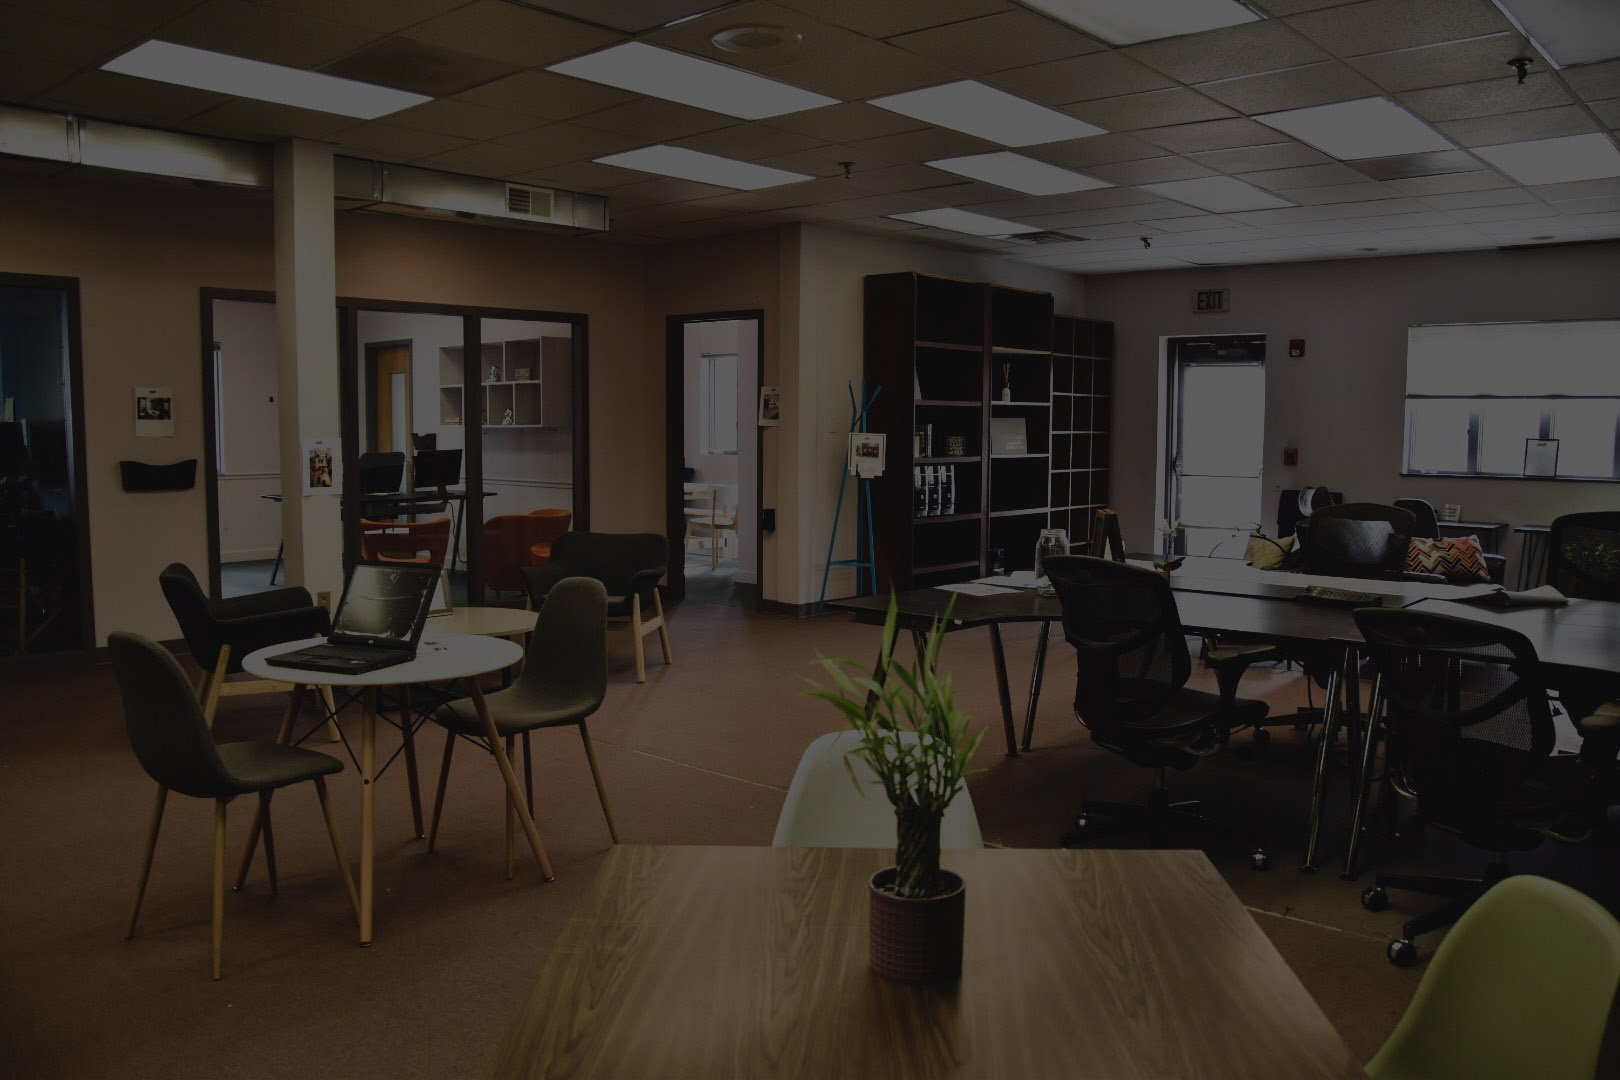 MEET YOUR NEW COWORKING SPACE